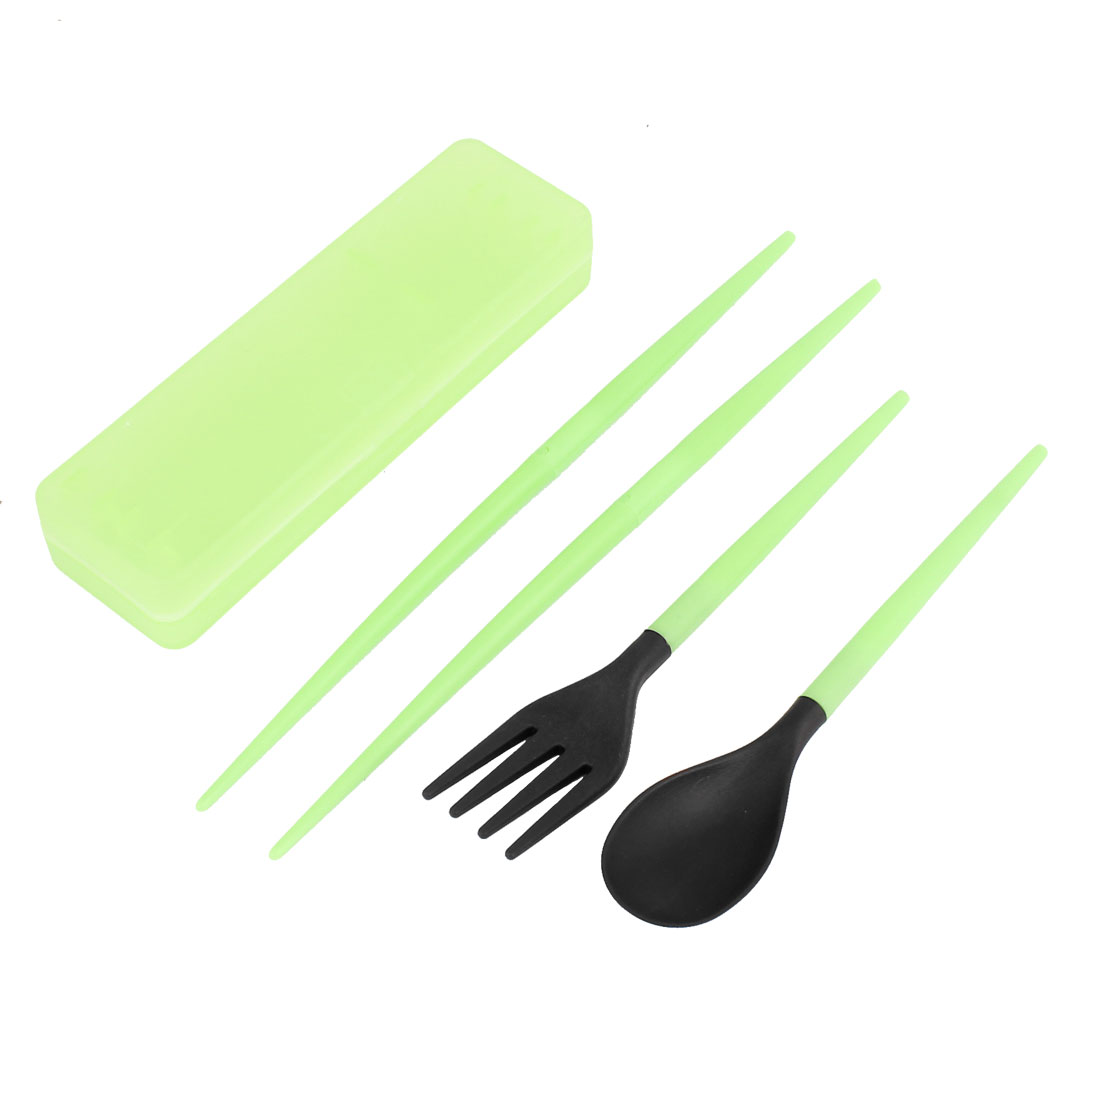 Green Case Plastic Detachable Spoon Fork Chopsticks Dinnerware 3 in 1 Set